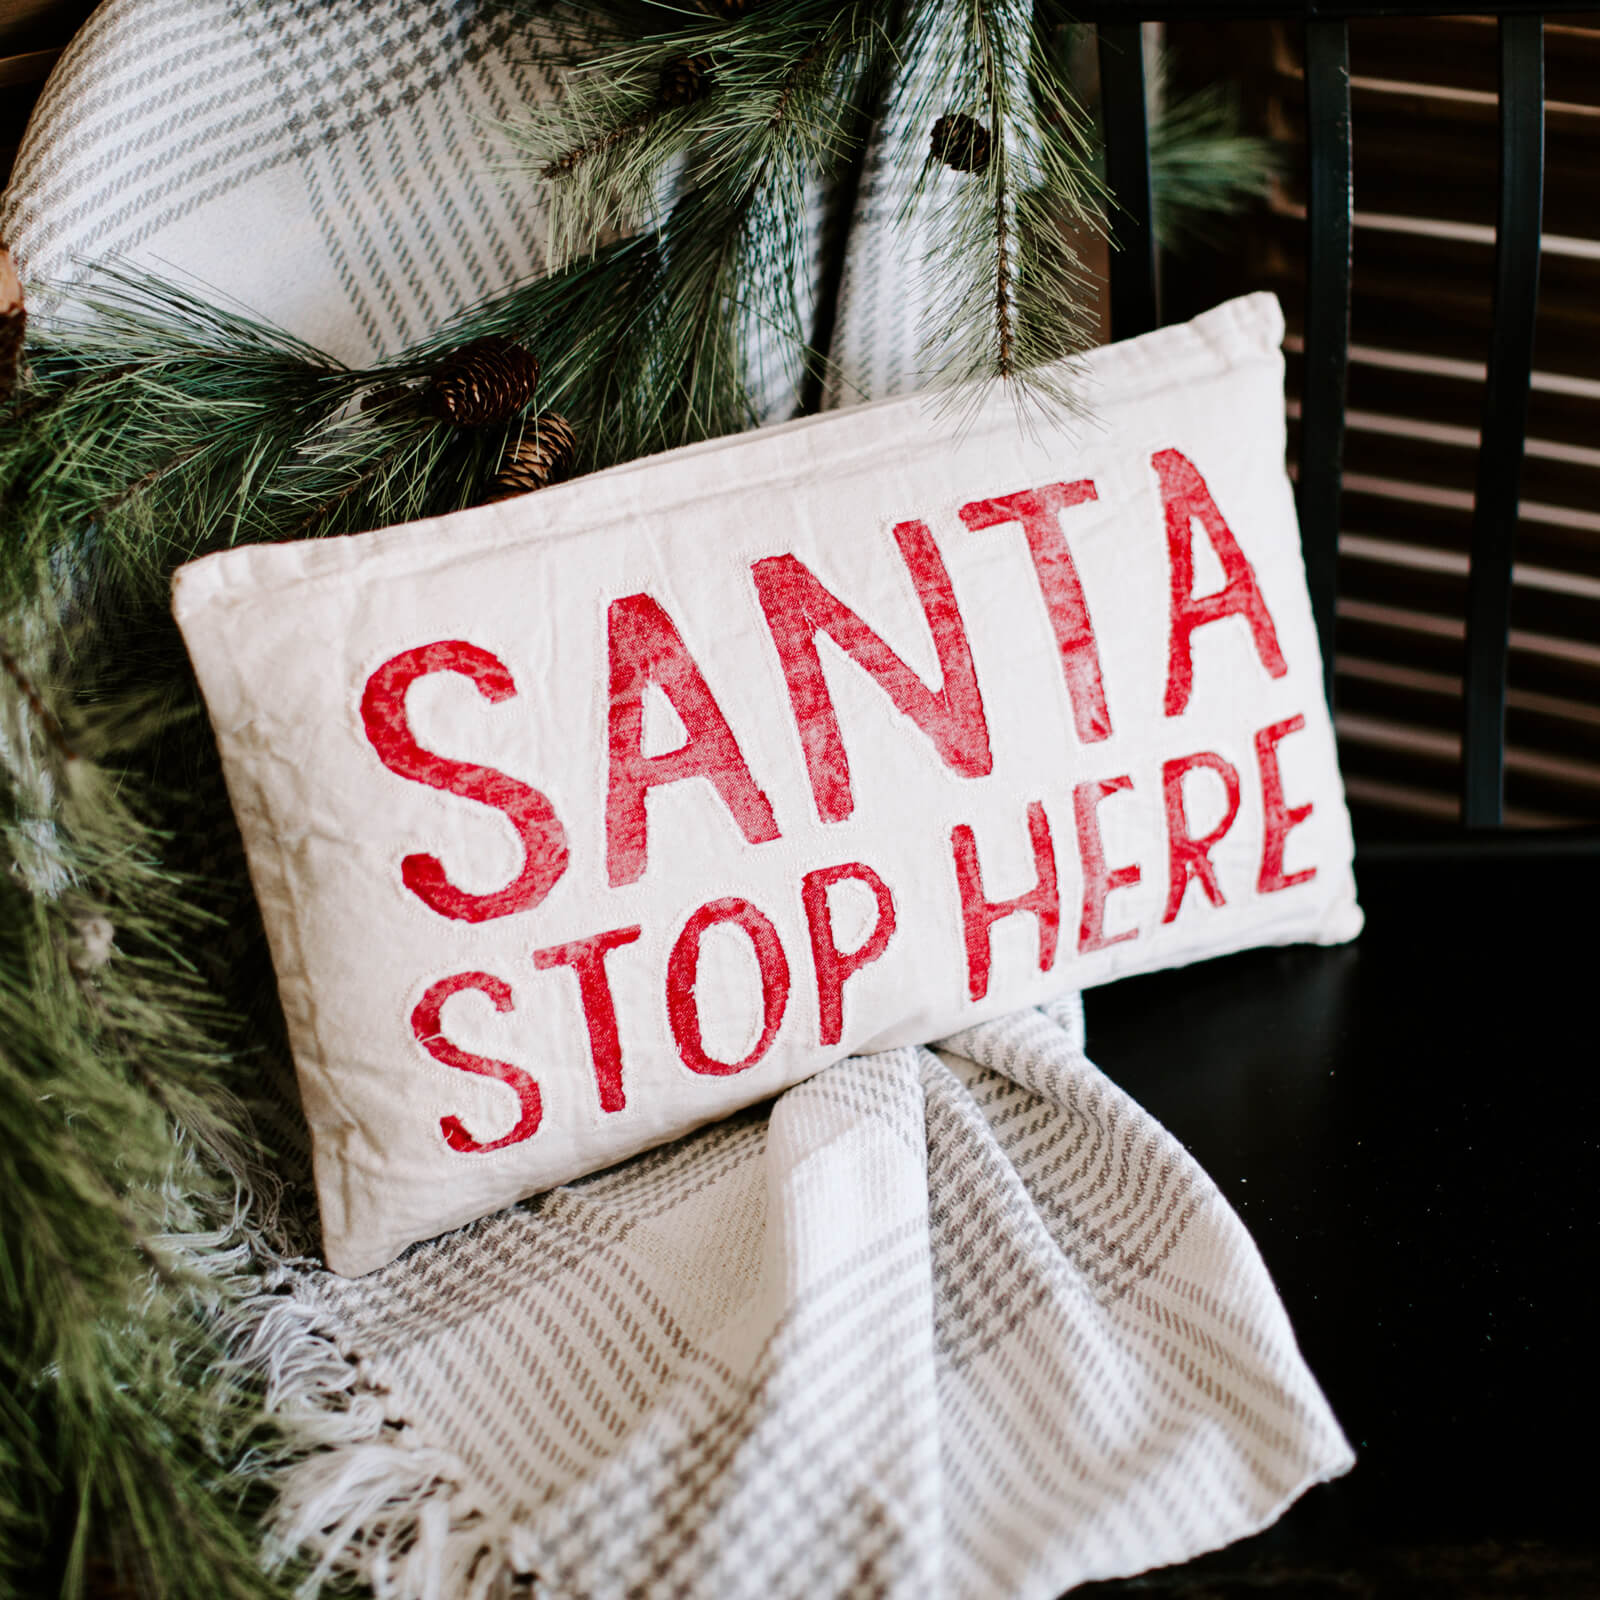 "A washed canvas pillow in white with red lettering that reads ""Santa Stop Here"", resting on a bench with a plaid blanket"